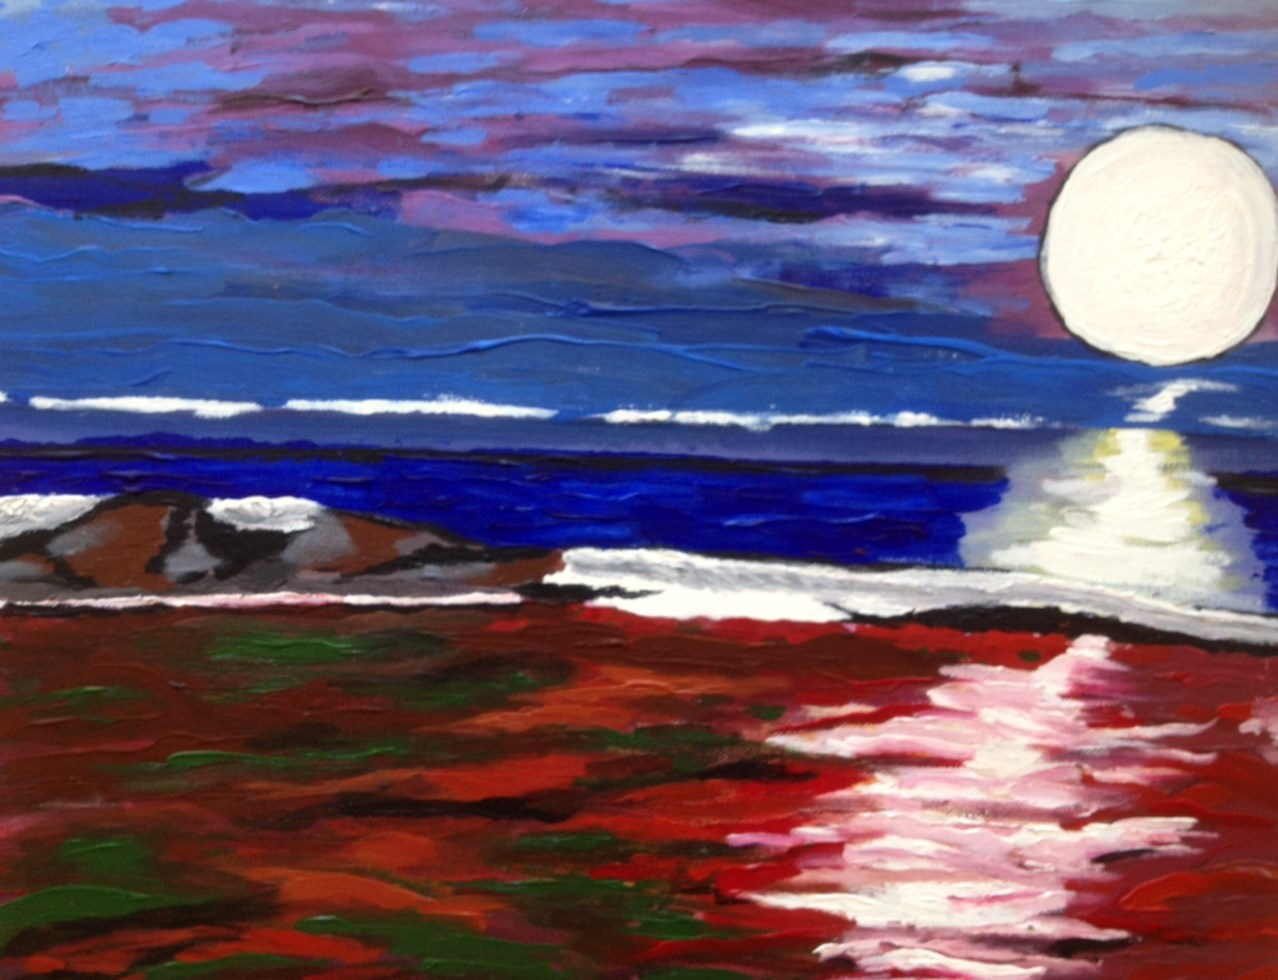 Bronte+Beach+full+moon.JPG